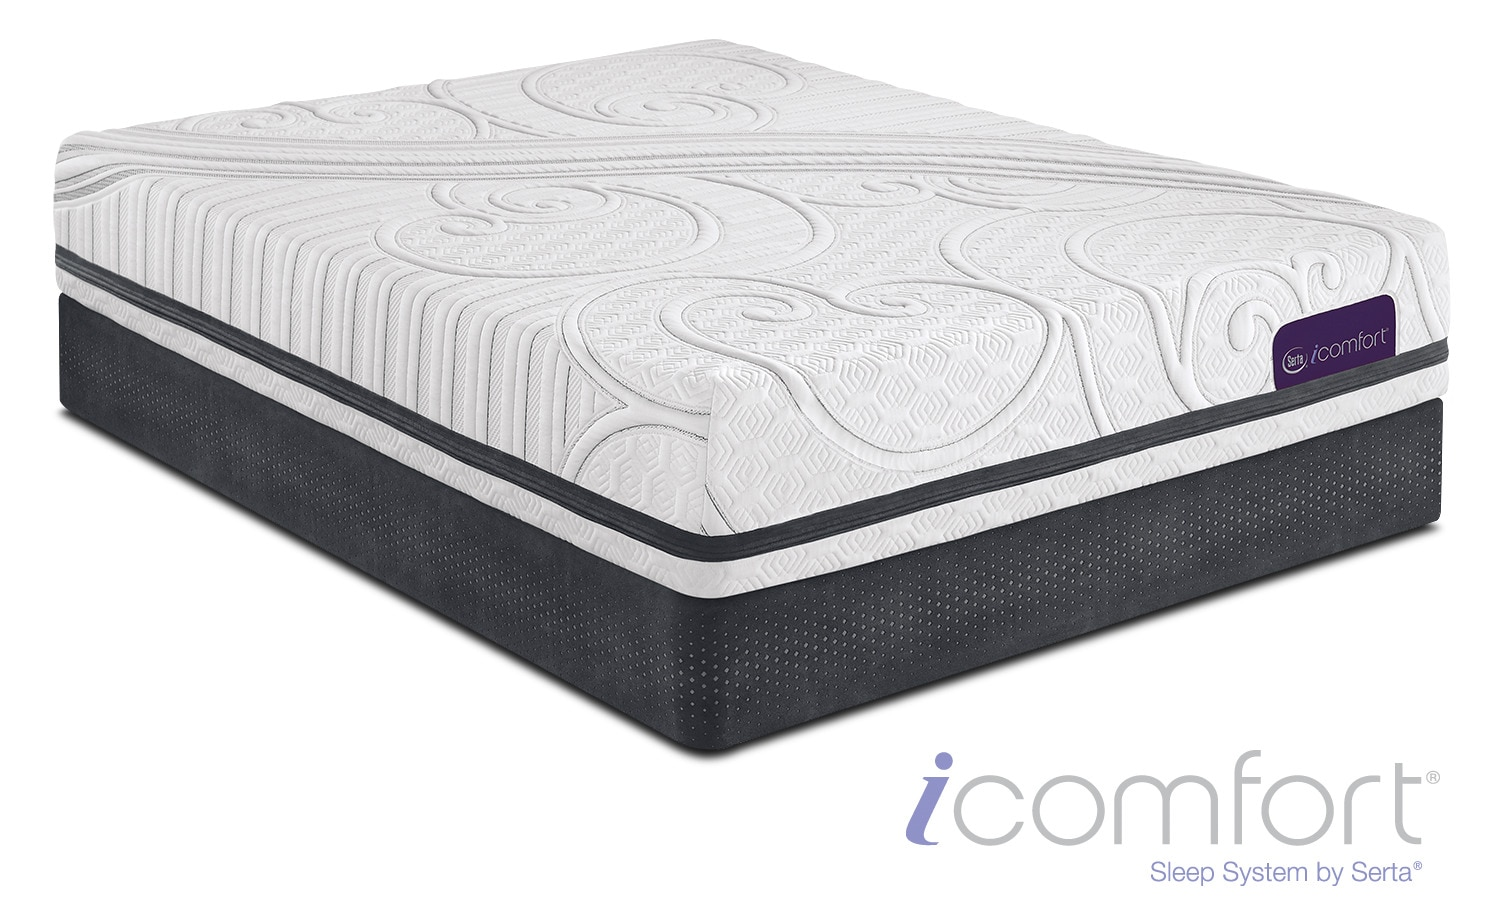 The Savant III Cushion Firm Mattress Collection